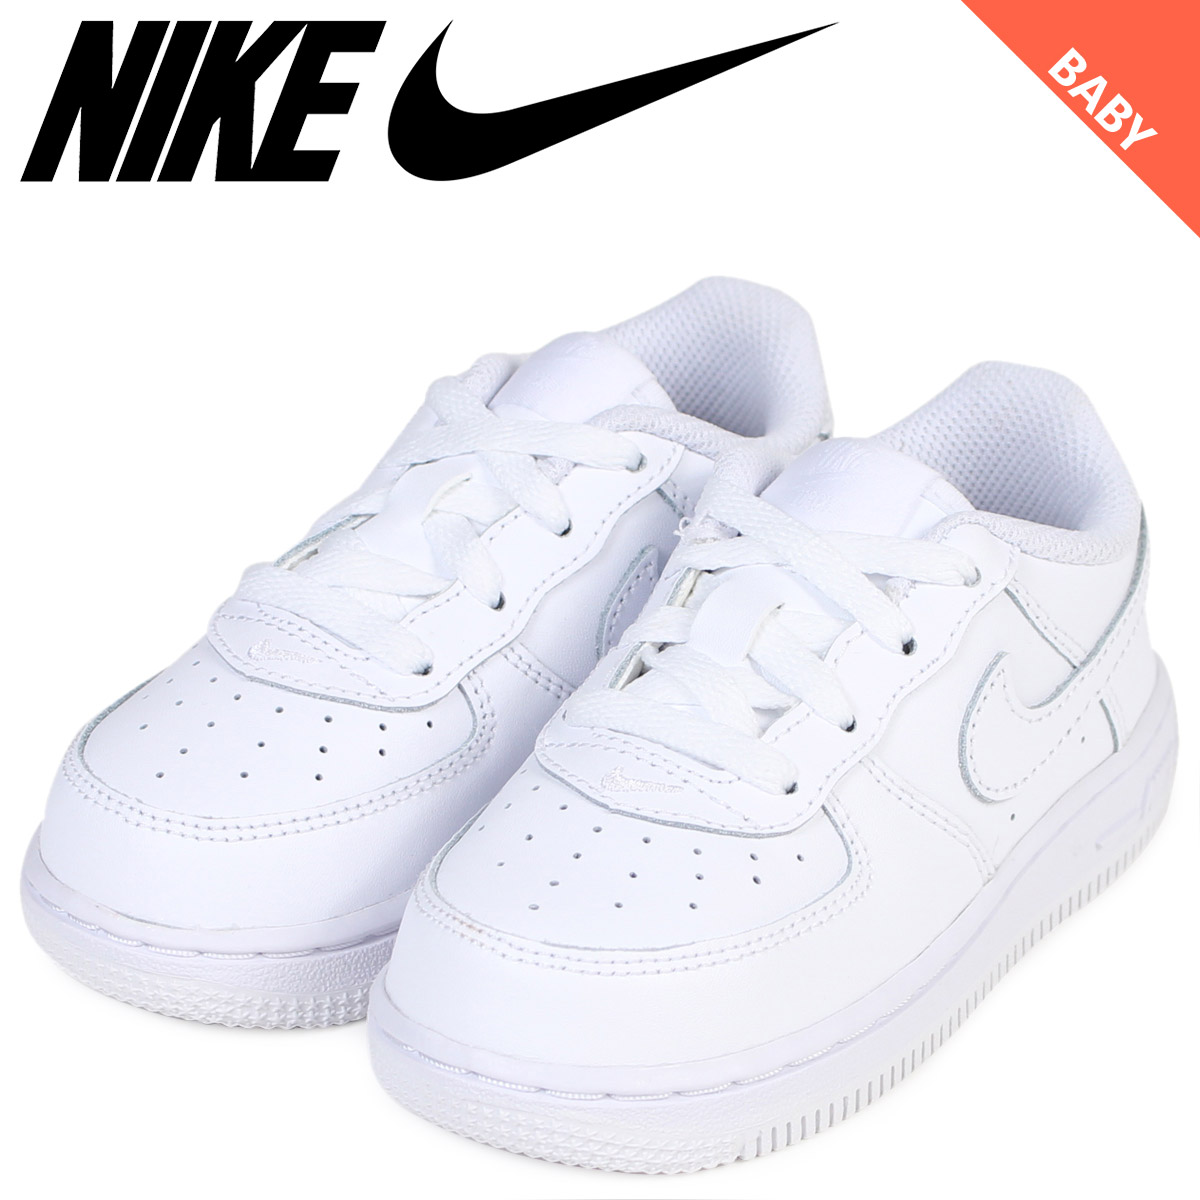 8f4cb4139a5c ... purchase nike nike air force 1 baby sneakers air force 1 td 314194 117  shoes white